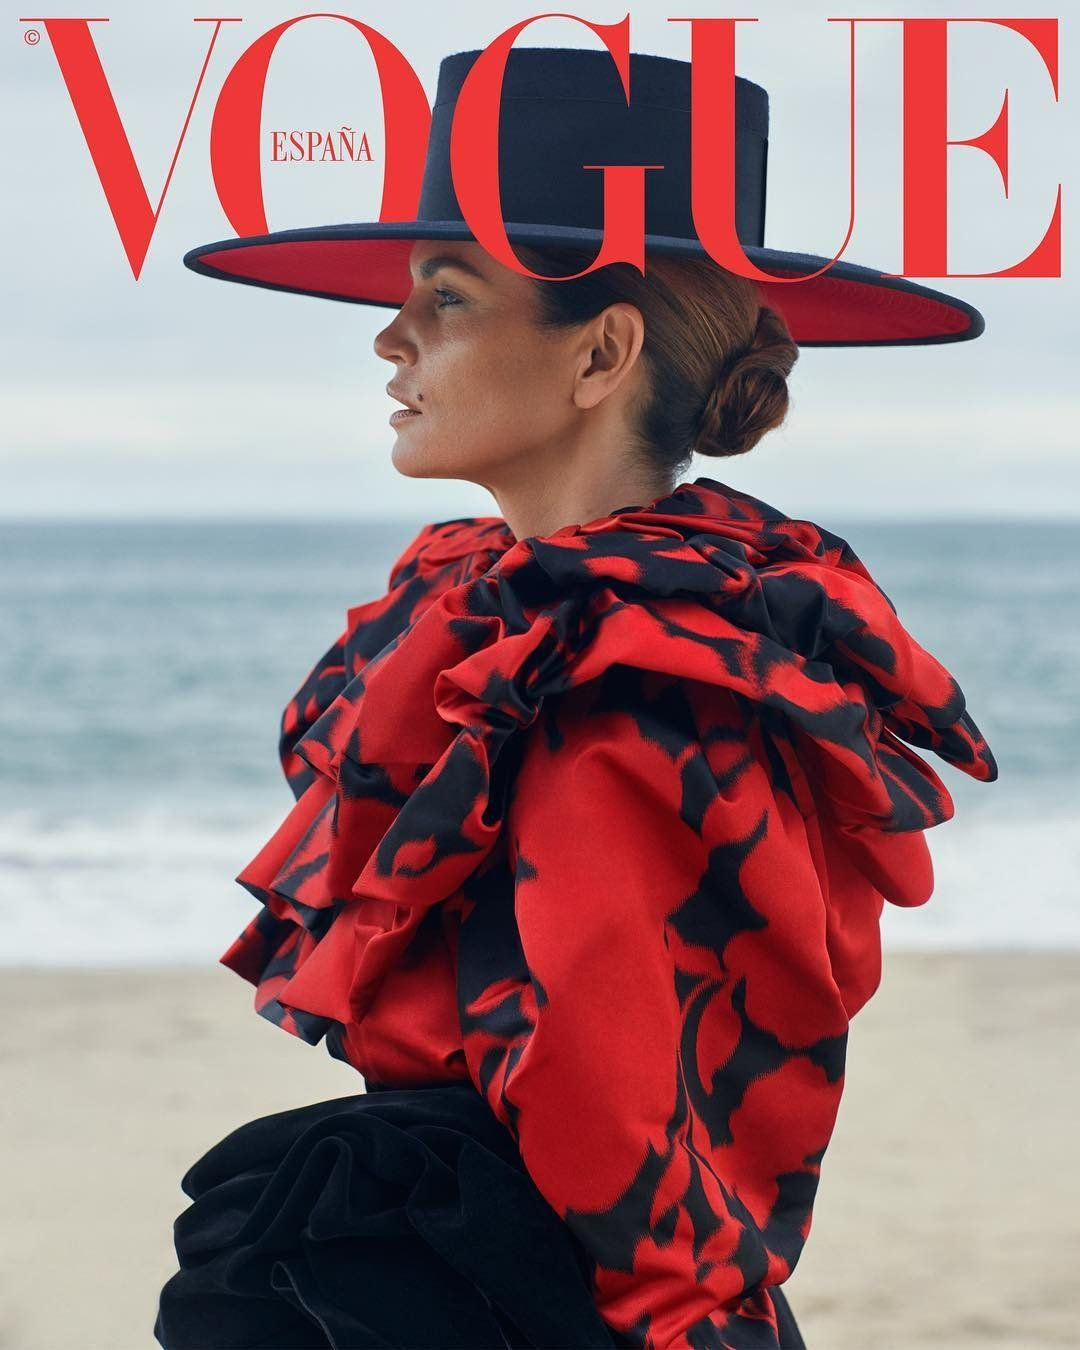 ddaa18fe6e Vogue Spain October 2018 - Cindy Crawford | Vogue Spain Covers in ...